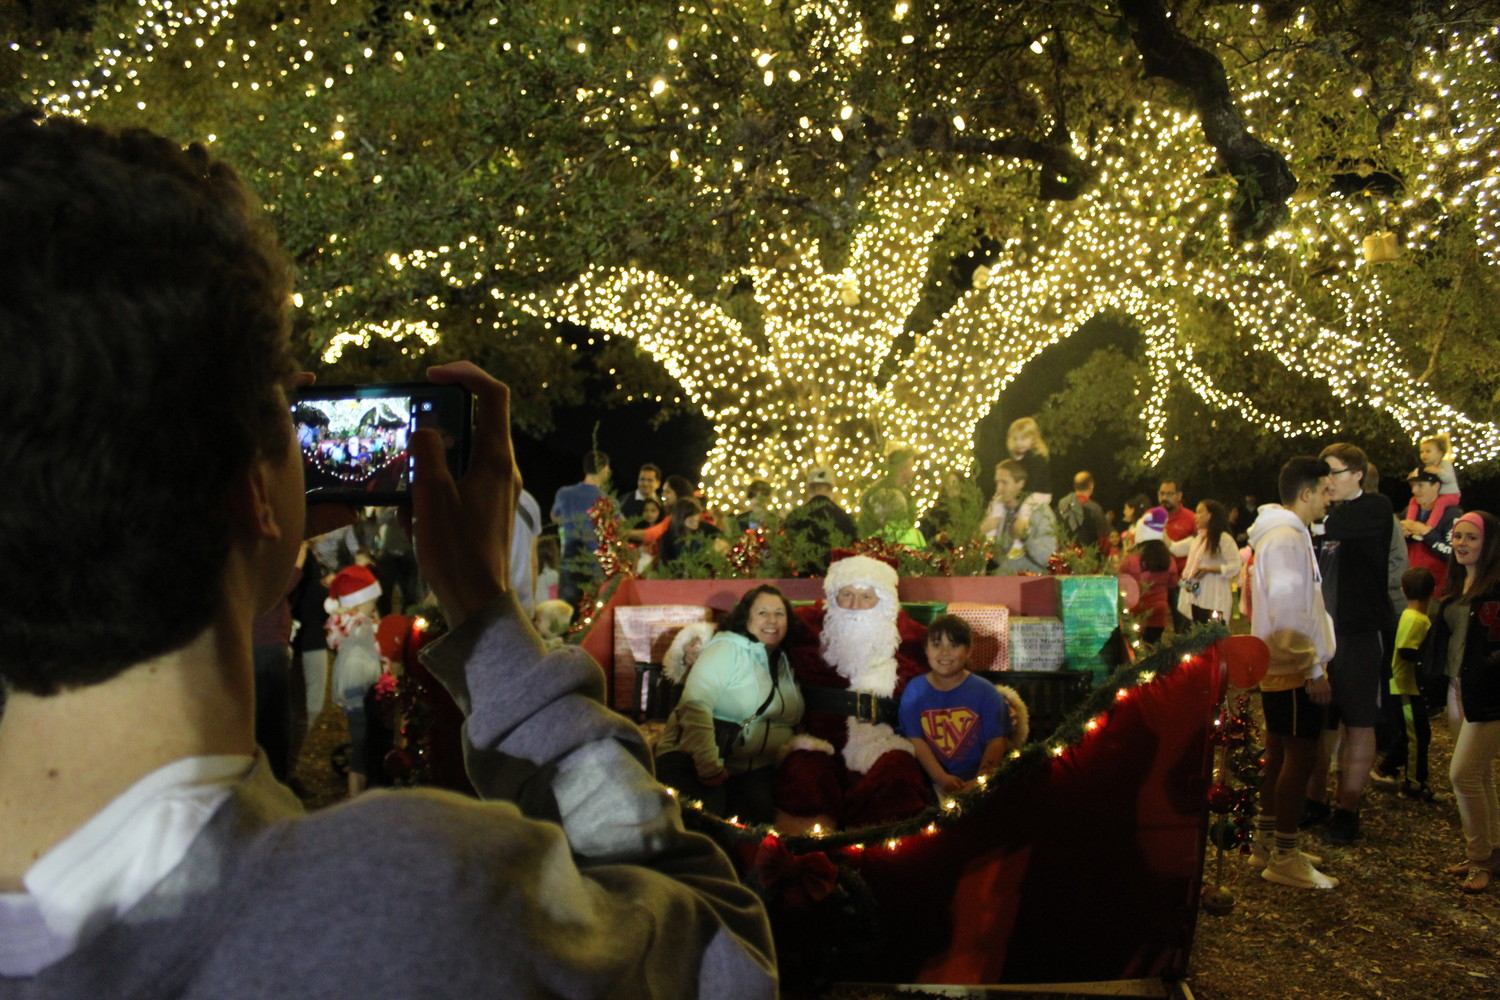 Underneath the glow of nearly 72,000 Christmas lights, a family poses for a photo with Santa, Friday, Dec. 1. The annual Tree Lighting and Santa's Workshop event in Cedar Park included free carriage rides, inflatable bounce houses, arts and crafts and caroling from the Cedar Park High School women's choir.